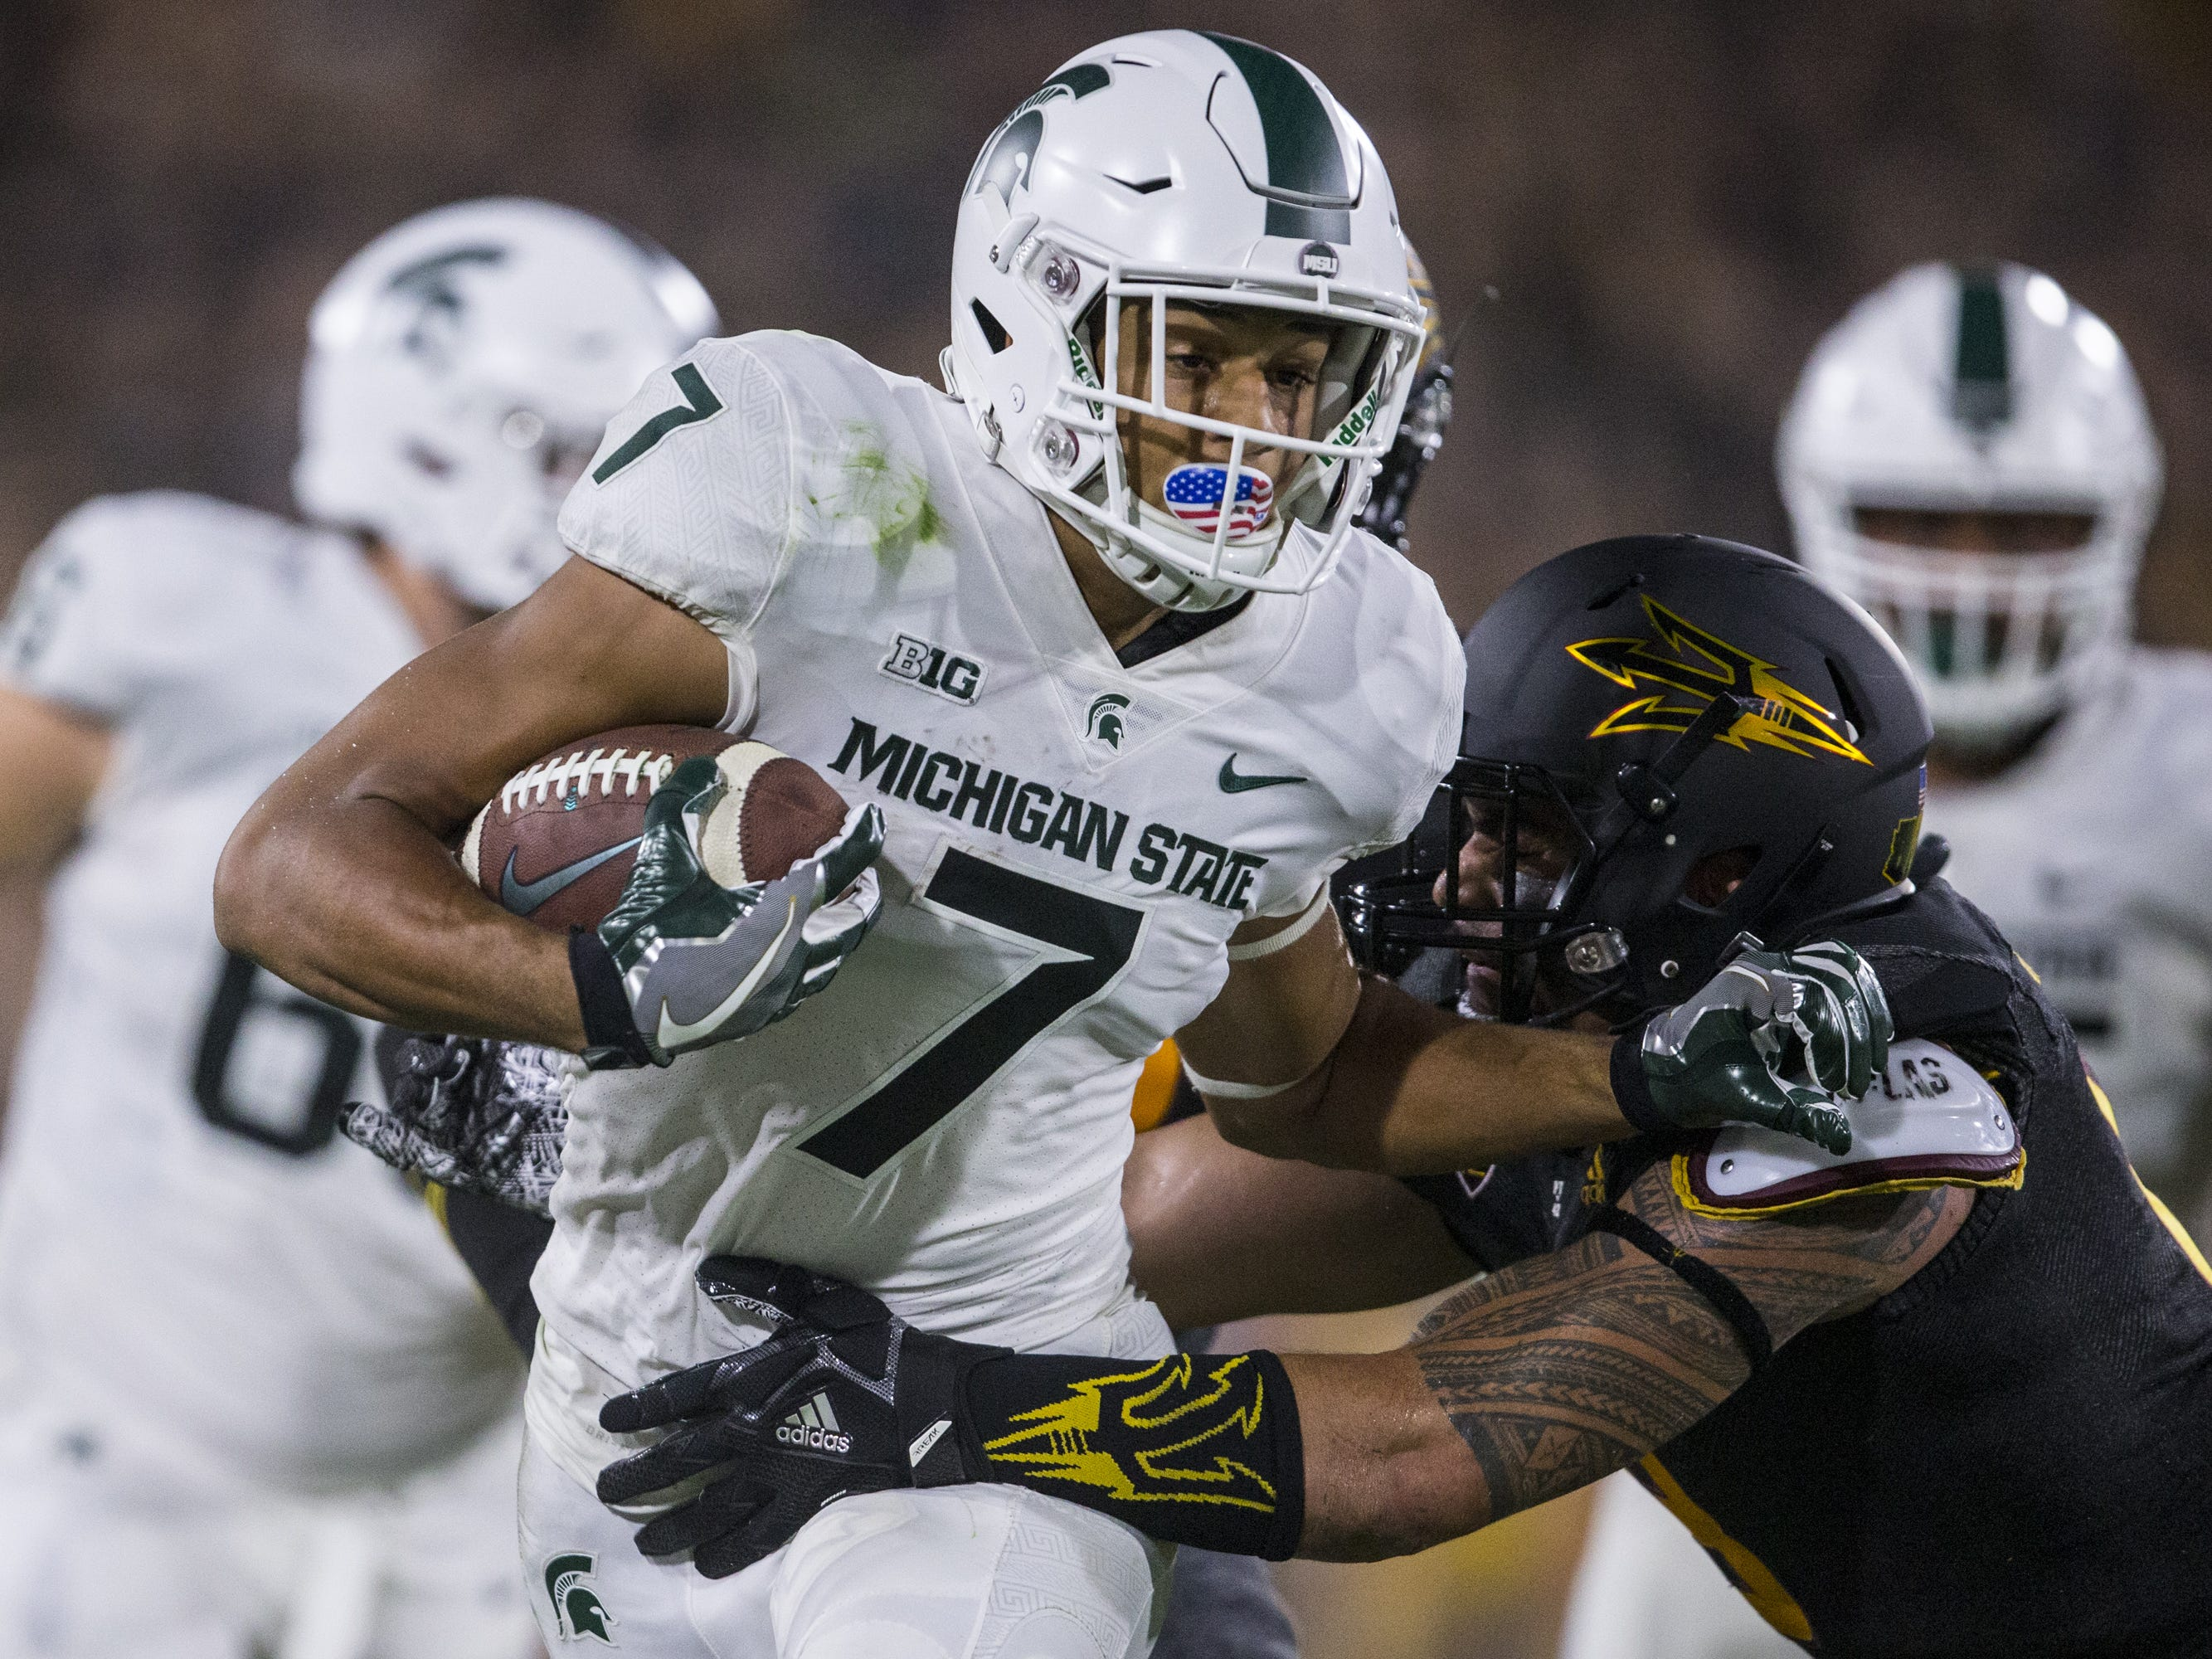 Michigan State's Cody White runs after a catch against Arizona State in the 3rd quarter on Saturday, Sept. 8, 2018, at Sun Devil Stadium in Tempe, Ariz.